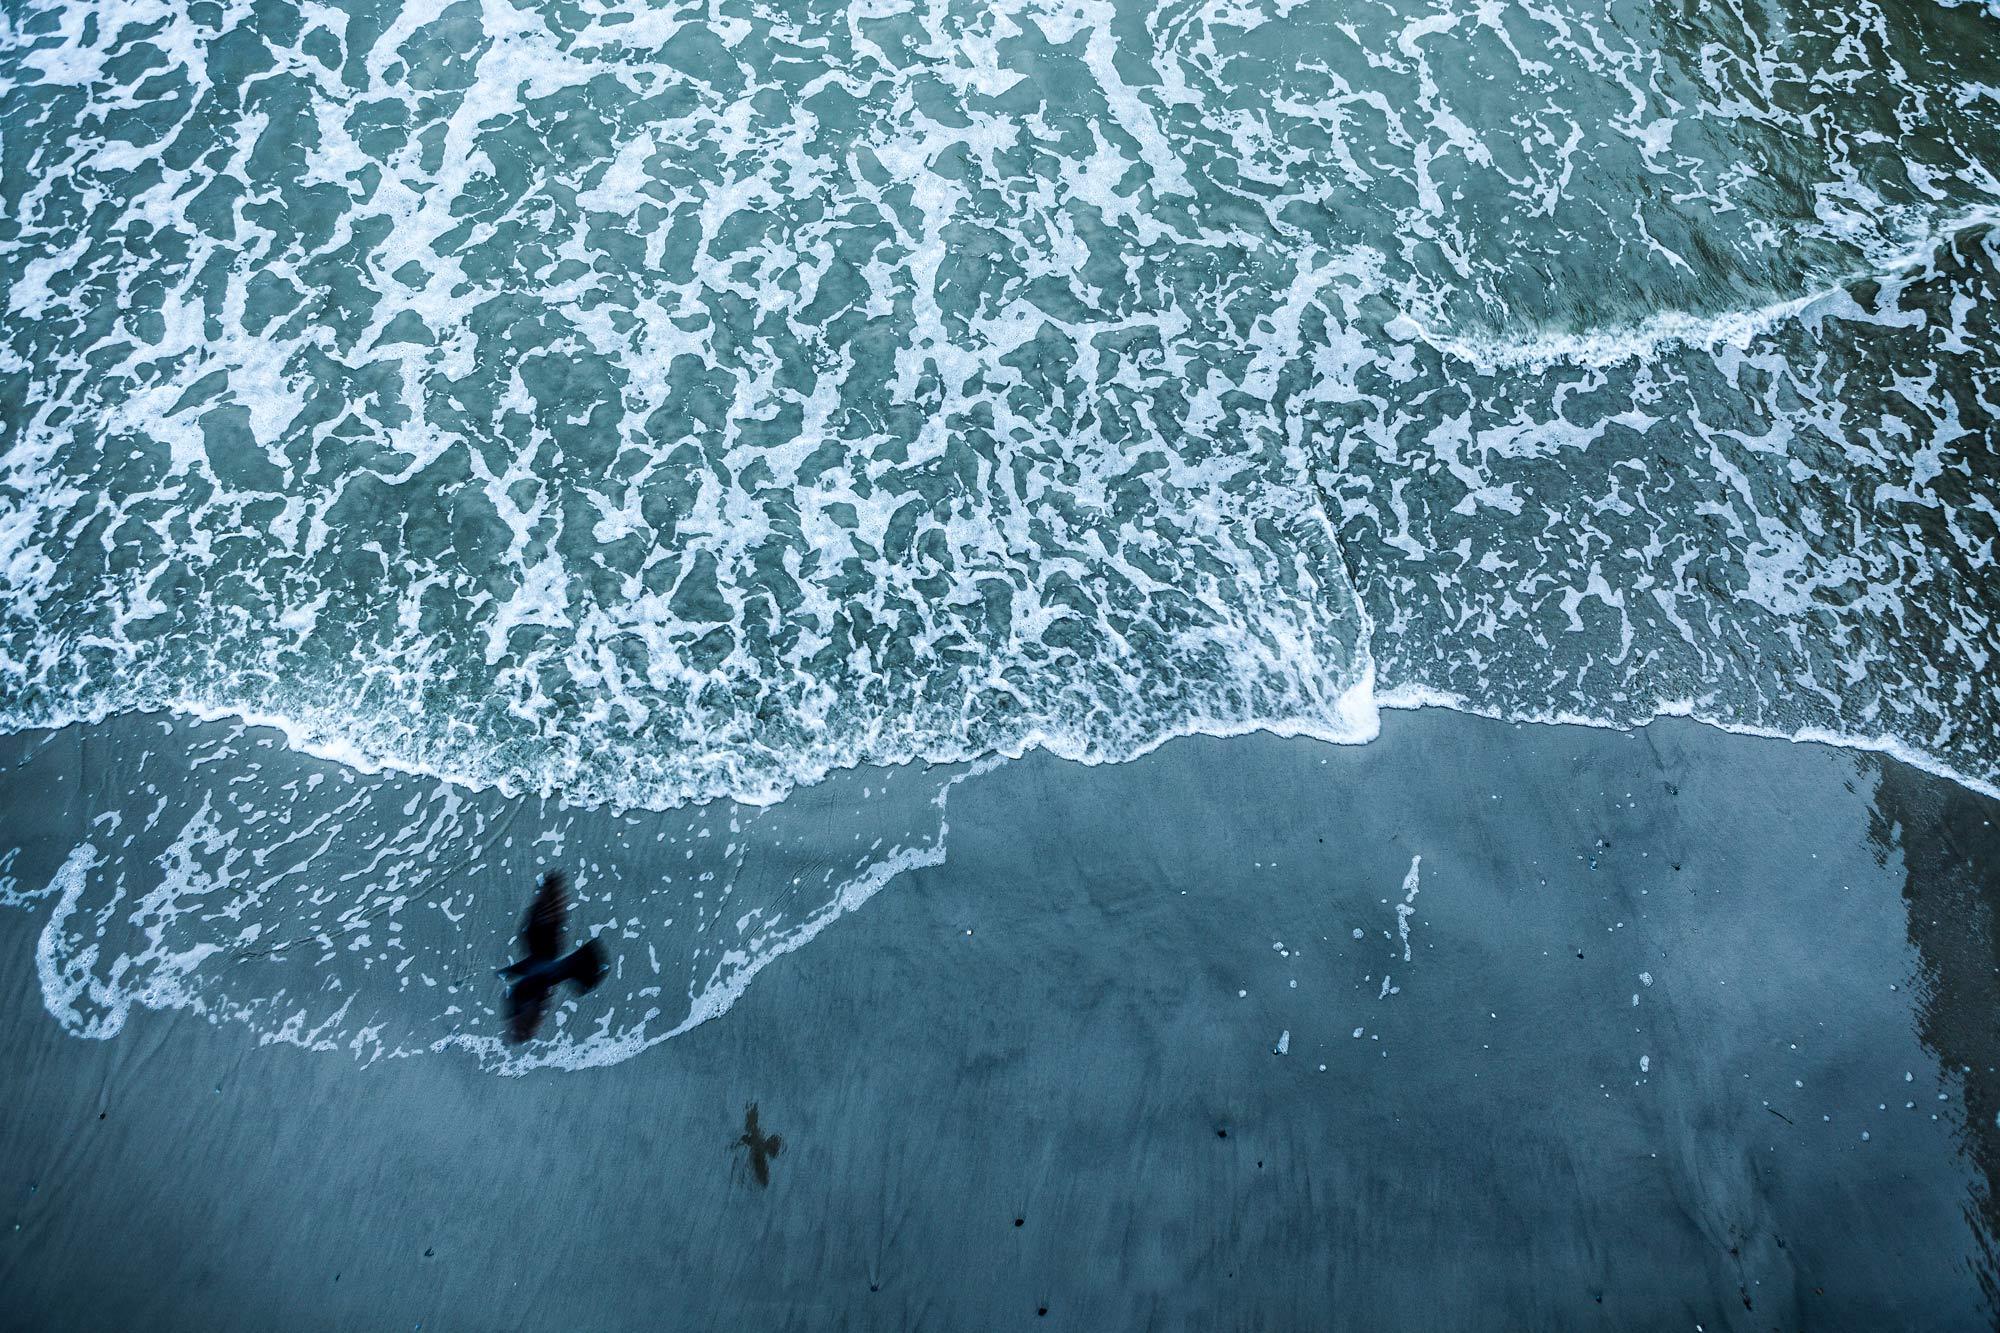 Black bird and shadow from above - water below